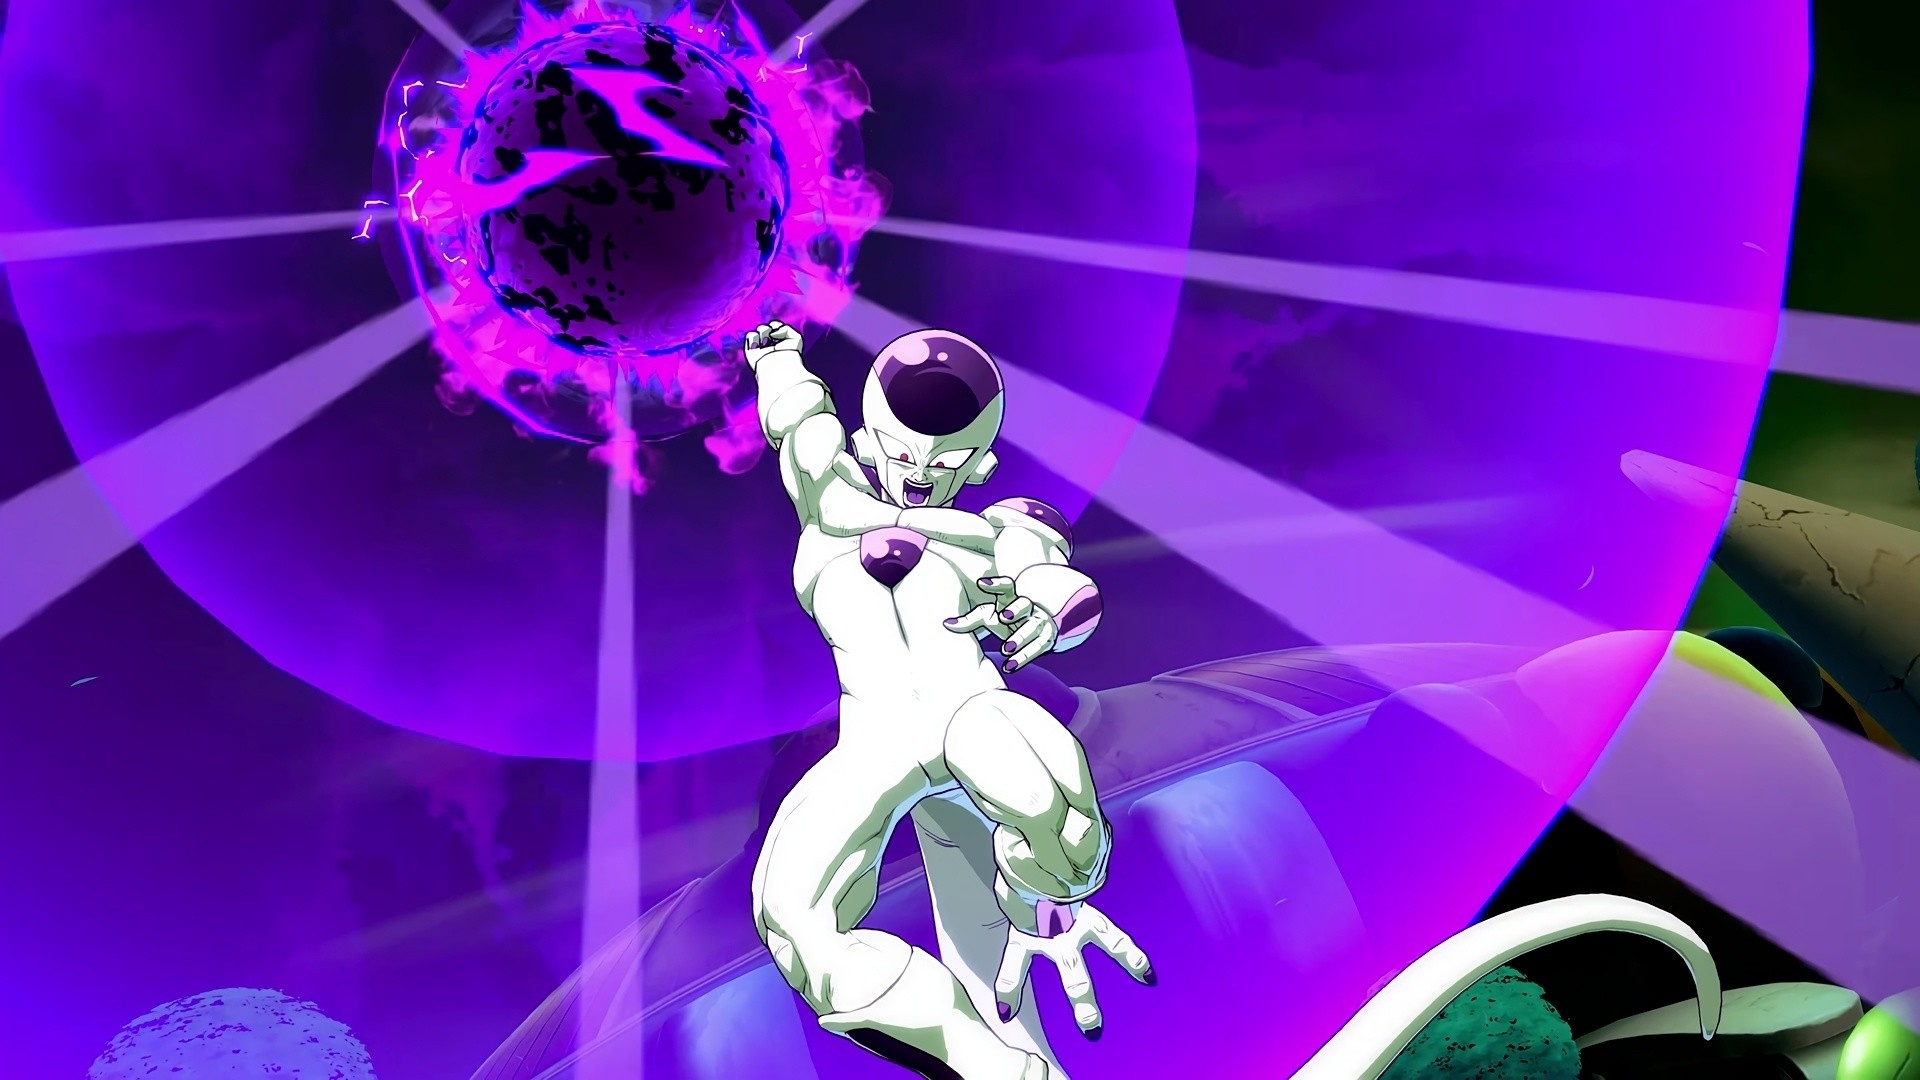 Res: 1920x1080, Dragon Ball Fighterz, Video Game, Video Game Backgrounds, Frieza Death Ball  Dragon Ball